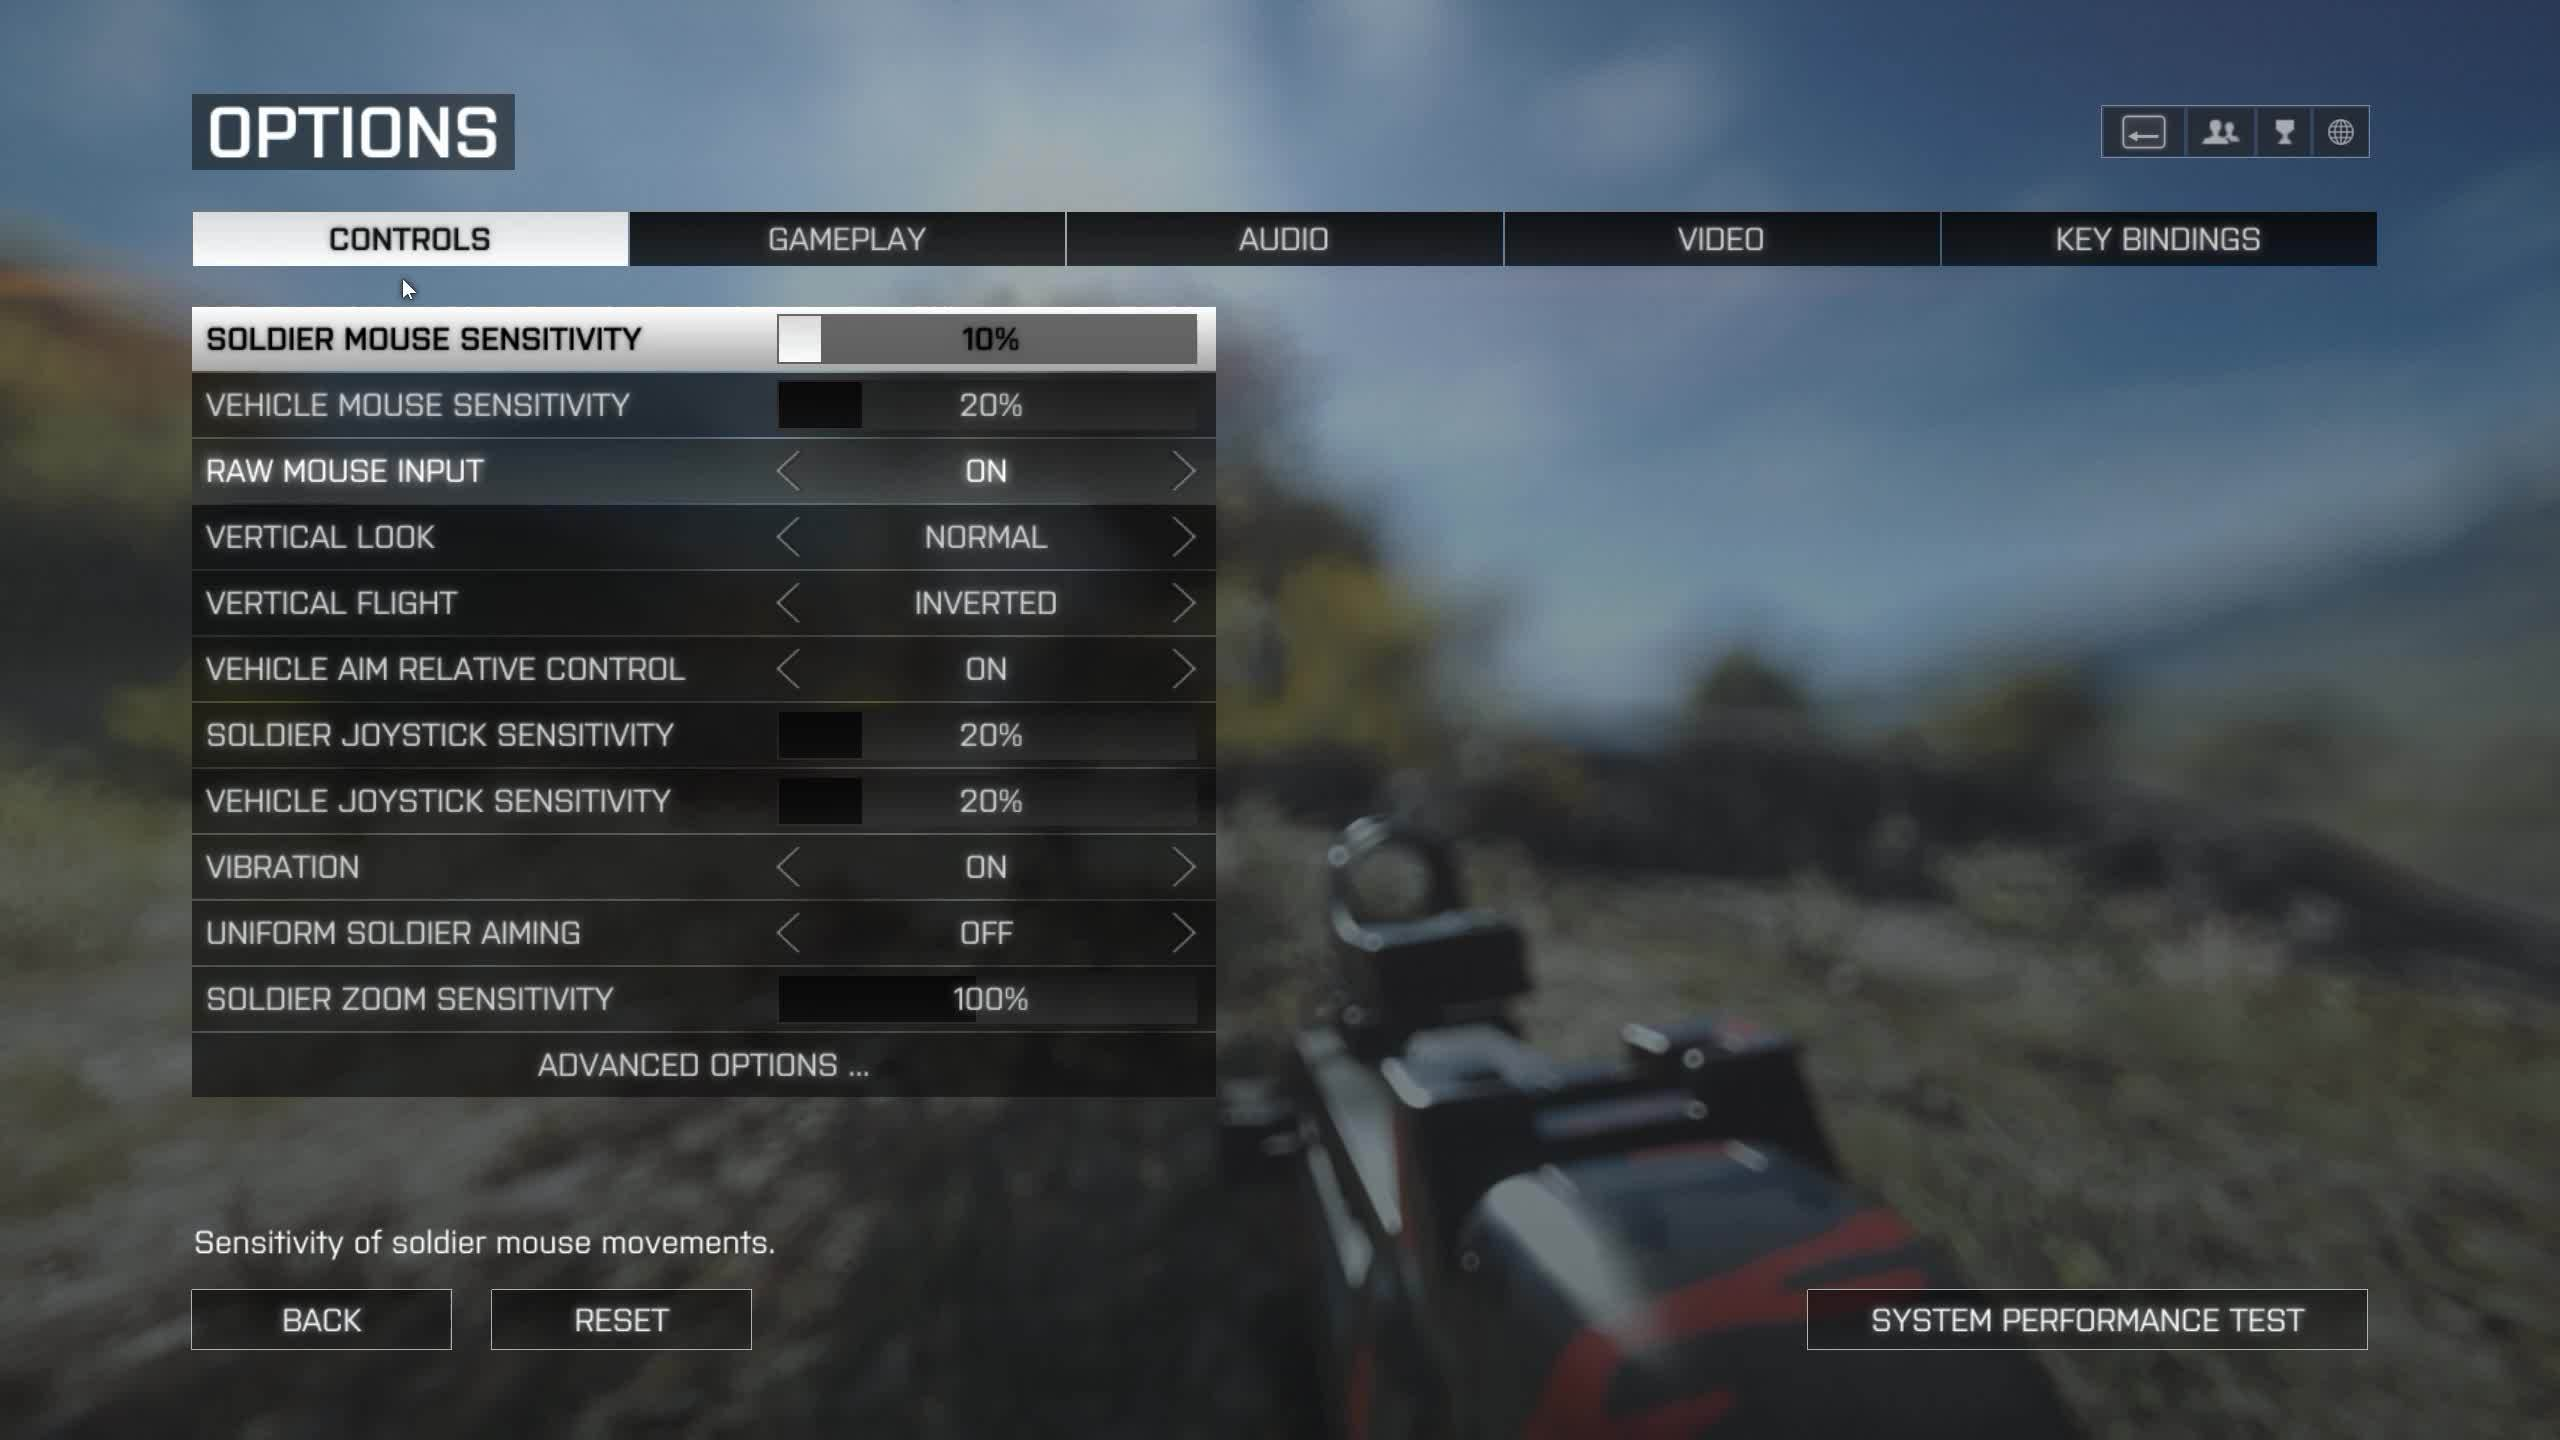 amd, How is Battlefield 4 running so good on my new XFX R9 390 paired with a Core i5 6600K @4K resolution on Ultra settings? (reddit) GIFs